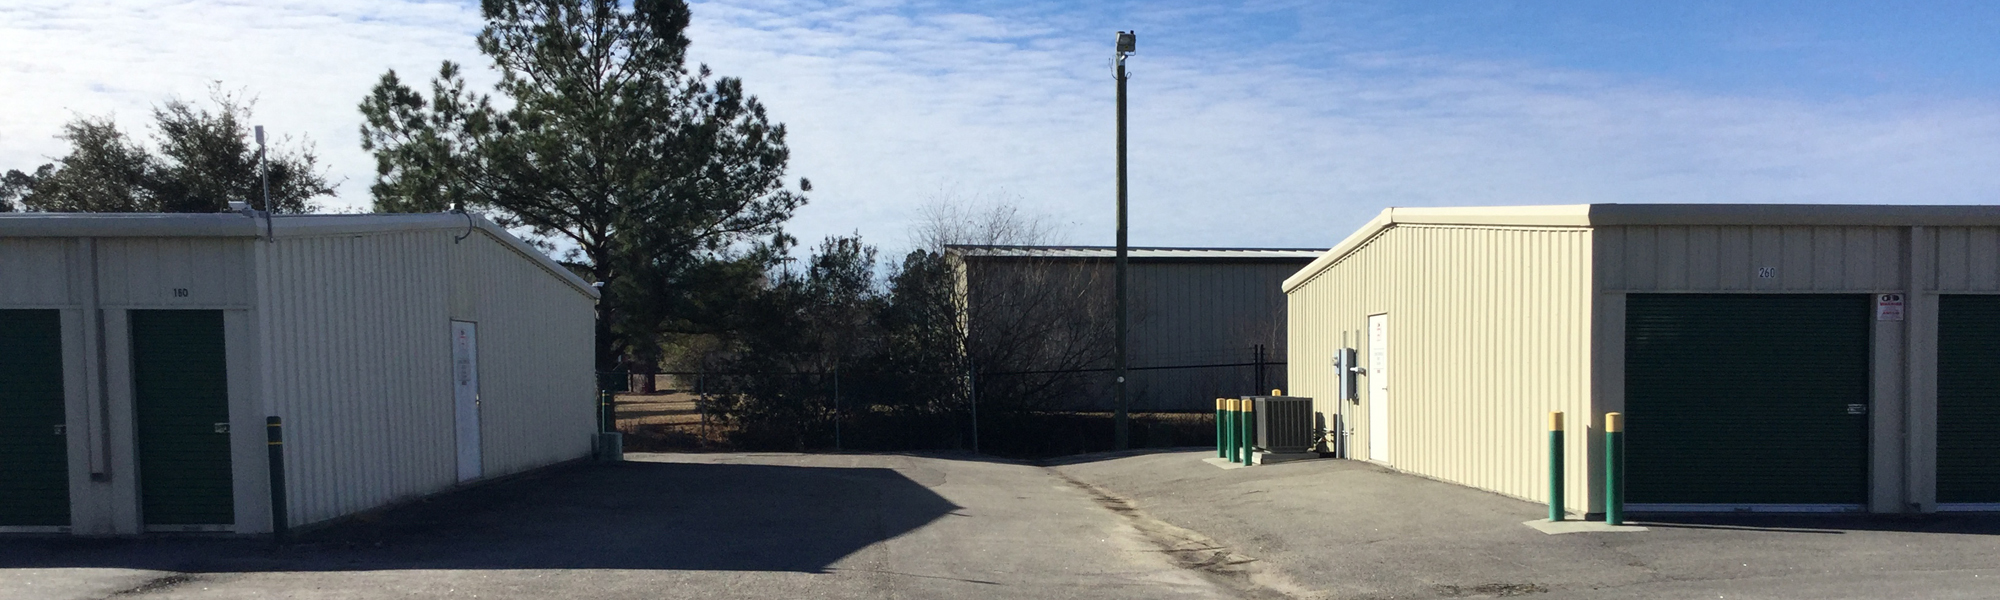 Affordable storage units in Loris, SC